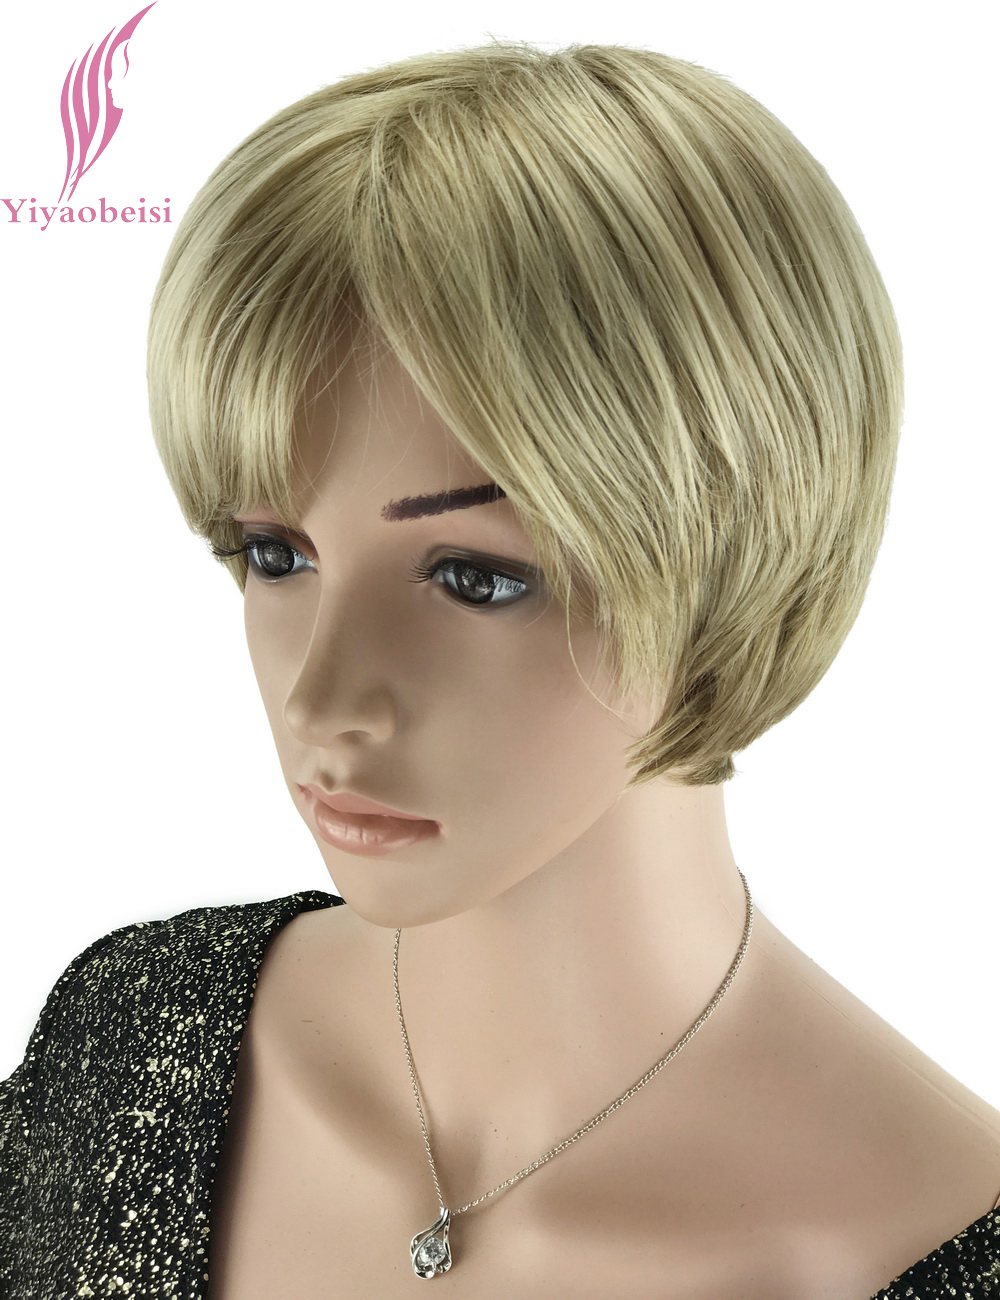 Yiyaobess 6inch Highlights Hair Heat Resistant Synthetic Straight Hairstyle Blonde Short Wigs For Black Women Free Ship